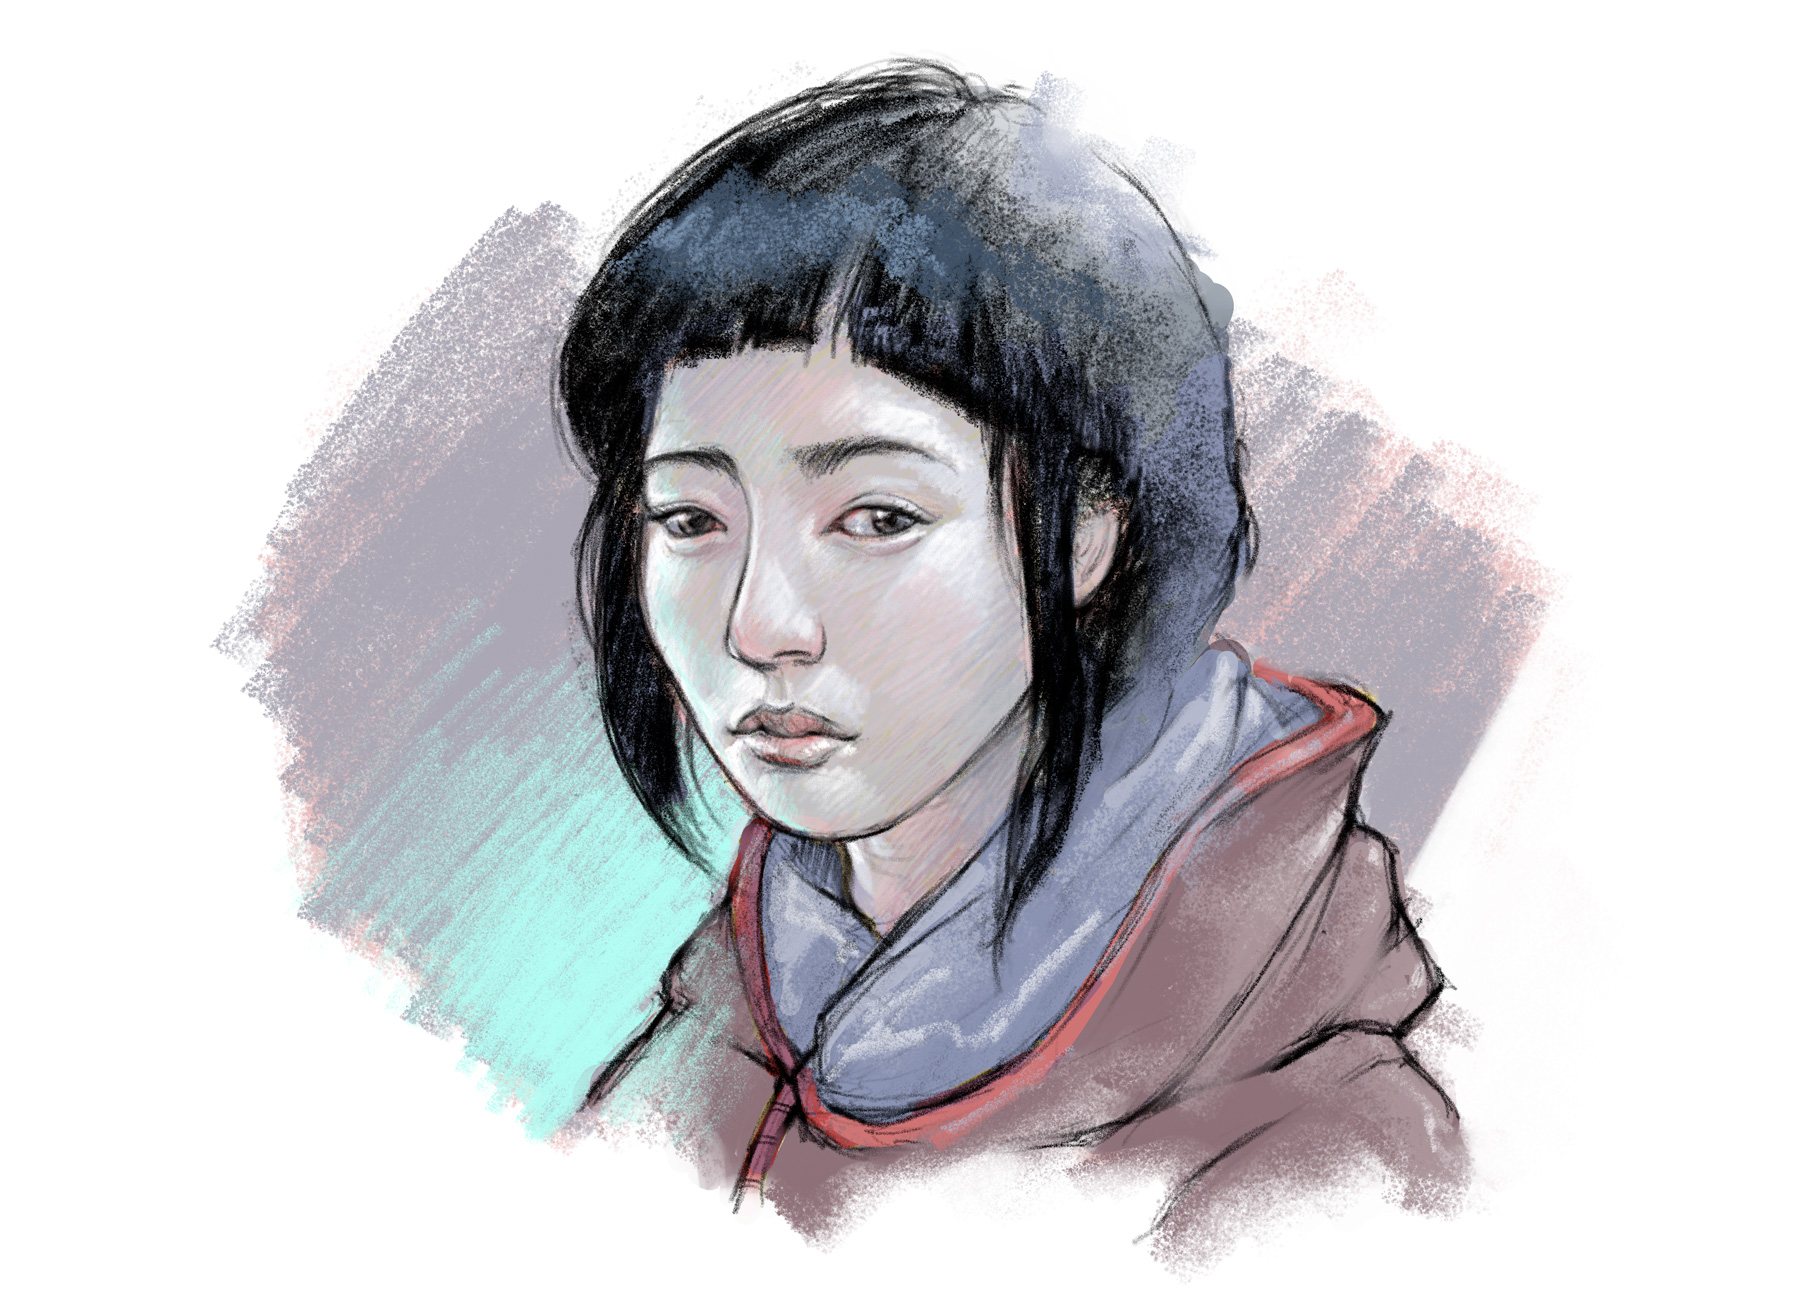 Linea portrait of Motoko by David A. Brasgalla